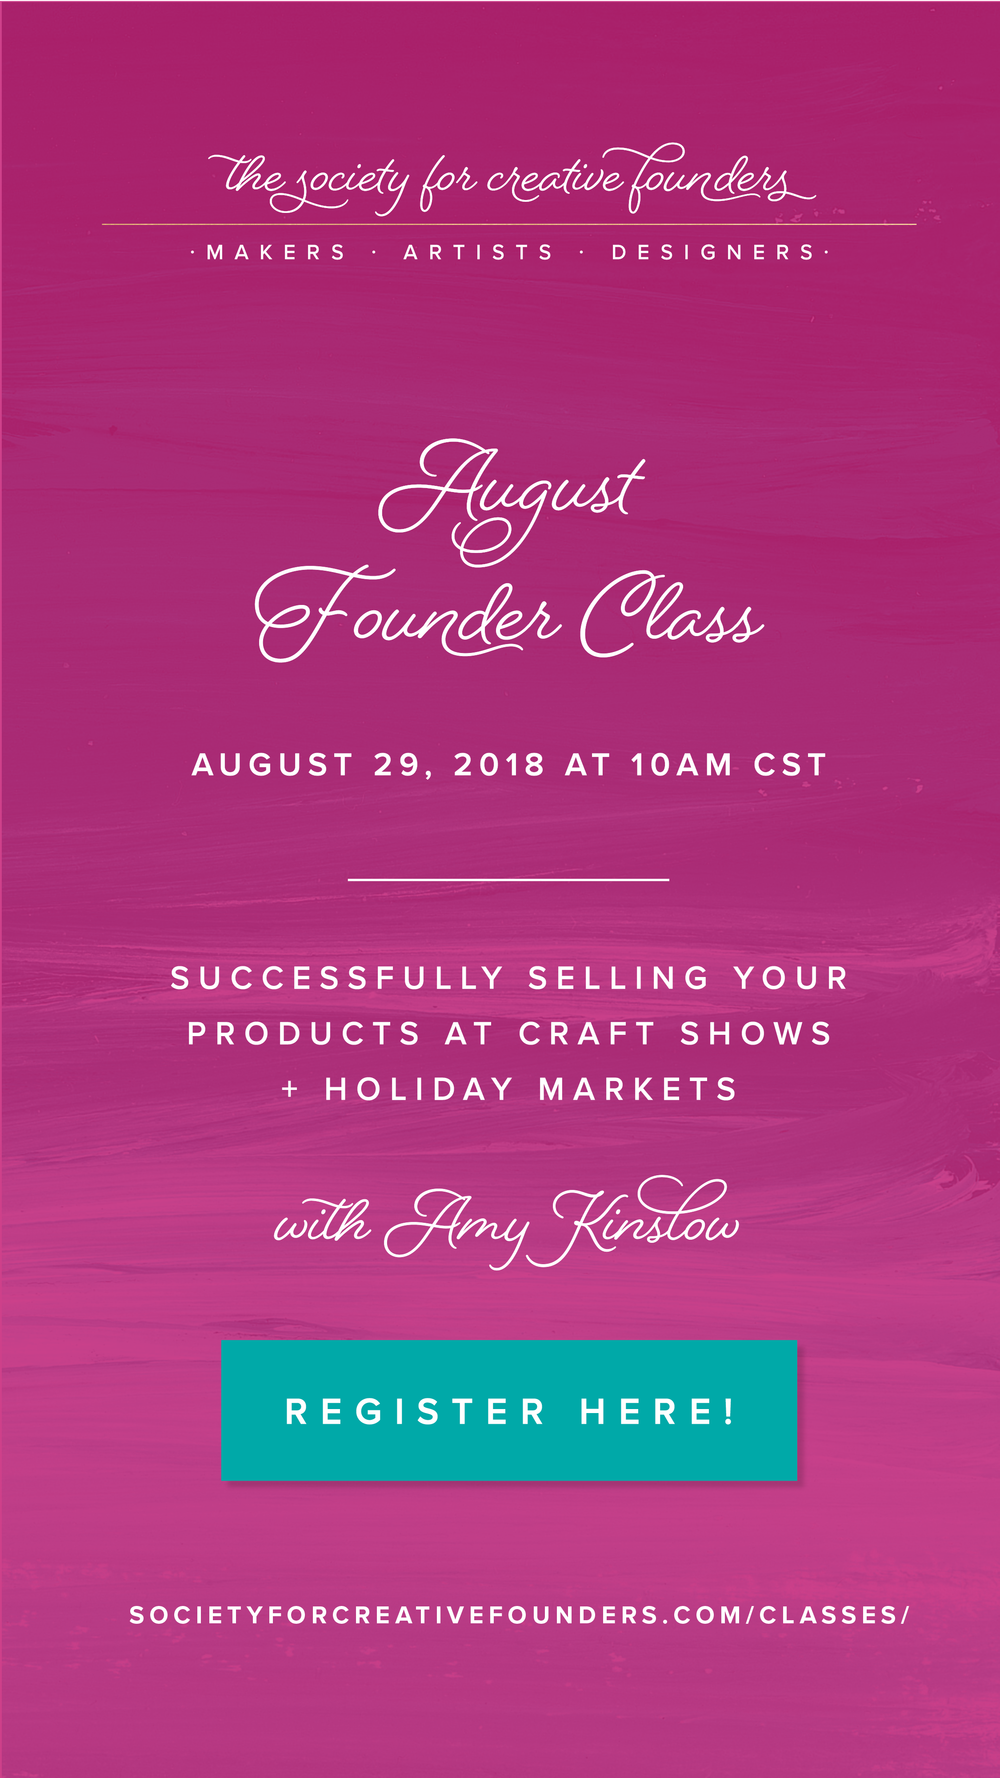 Successfully Selling your Products at Craft Shows + Holiday Markets with Amy Kinslow - Creative Founder Class